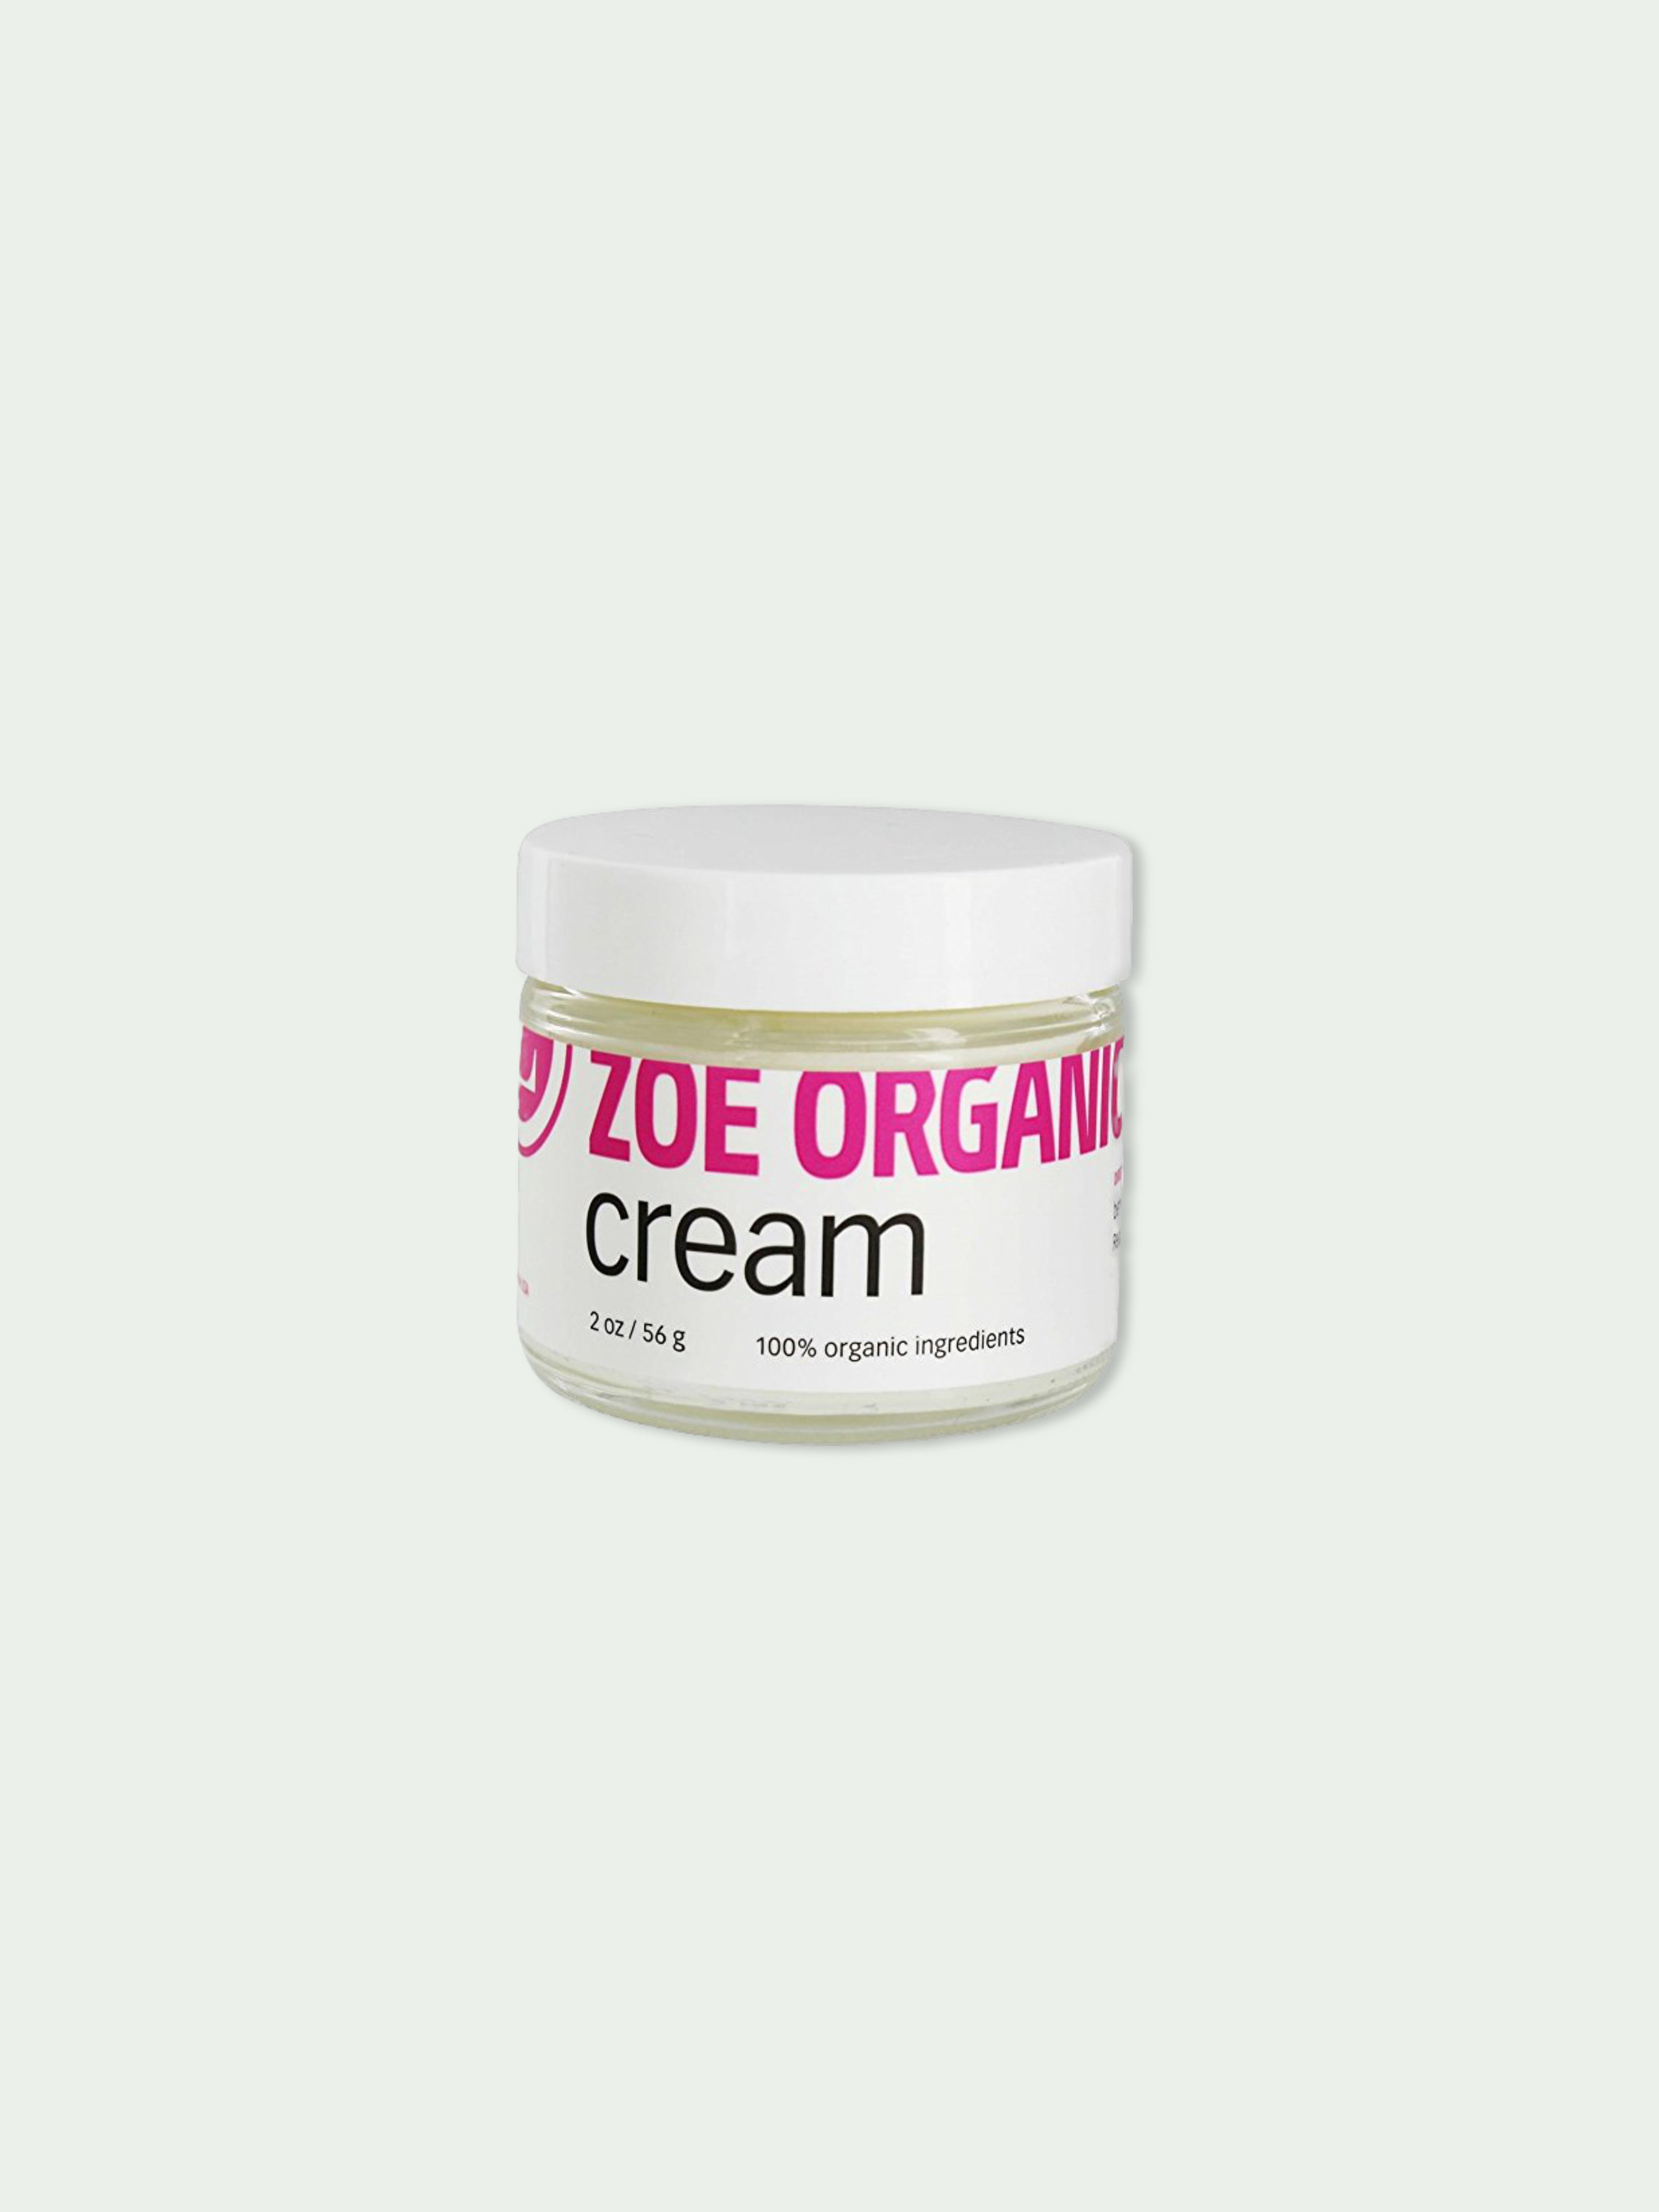 Zoe Organics Cream - This ultra-rich organic cream is intensely nourishing and moisturizing. It is fragrance-free and perfect for sensitive skin. Unlike lotion, it contains no water, fillers or chemical preservatives. A little goes a long way! My 2 oz jar lasts about ten months. I've been using this cream for over two years and don't know what I would do without it. It's the only cream I've found that helps my eczema spots from drying out and itching both in the cold winters and dry summers.Got dry, sensitive or itchy skin? Try this Zoe Organics Cream! Your skin will thank you.